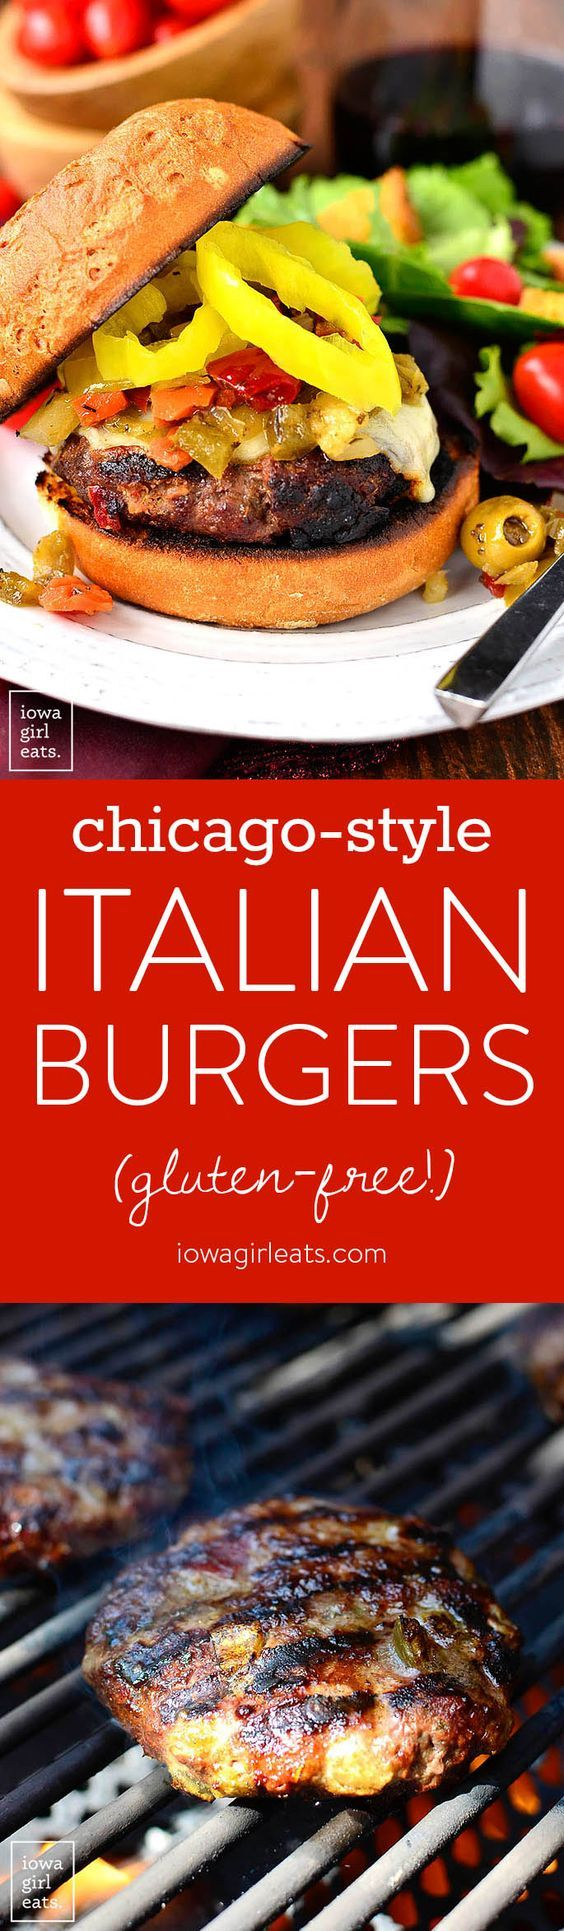 Chicago-Style Italian Burgers are a zesty, gluten-free grilling recipe packed with savory flavor. Grill indoors or out then top with melty cheese and tangy pickled peppers. | iowagirleats.com